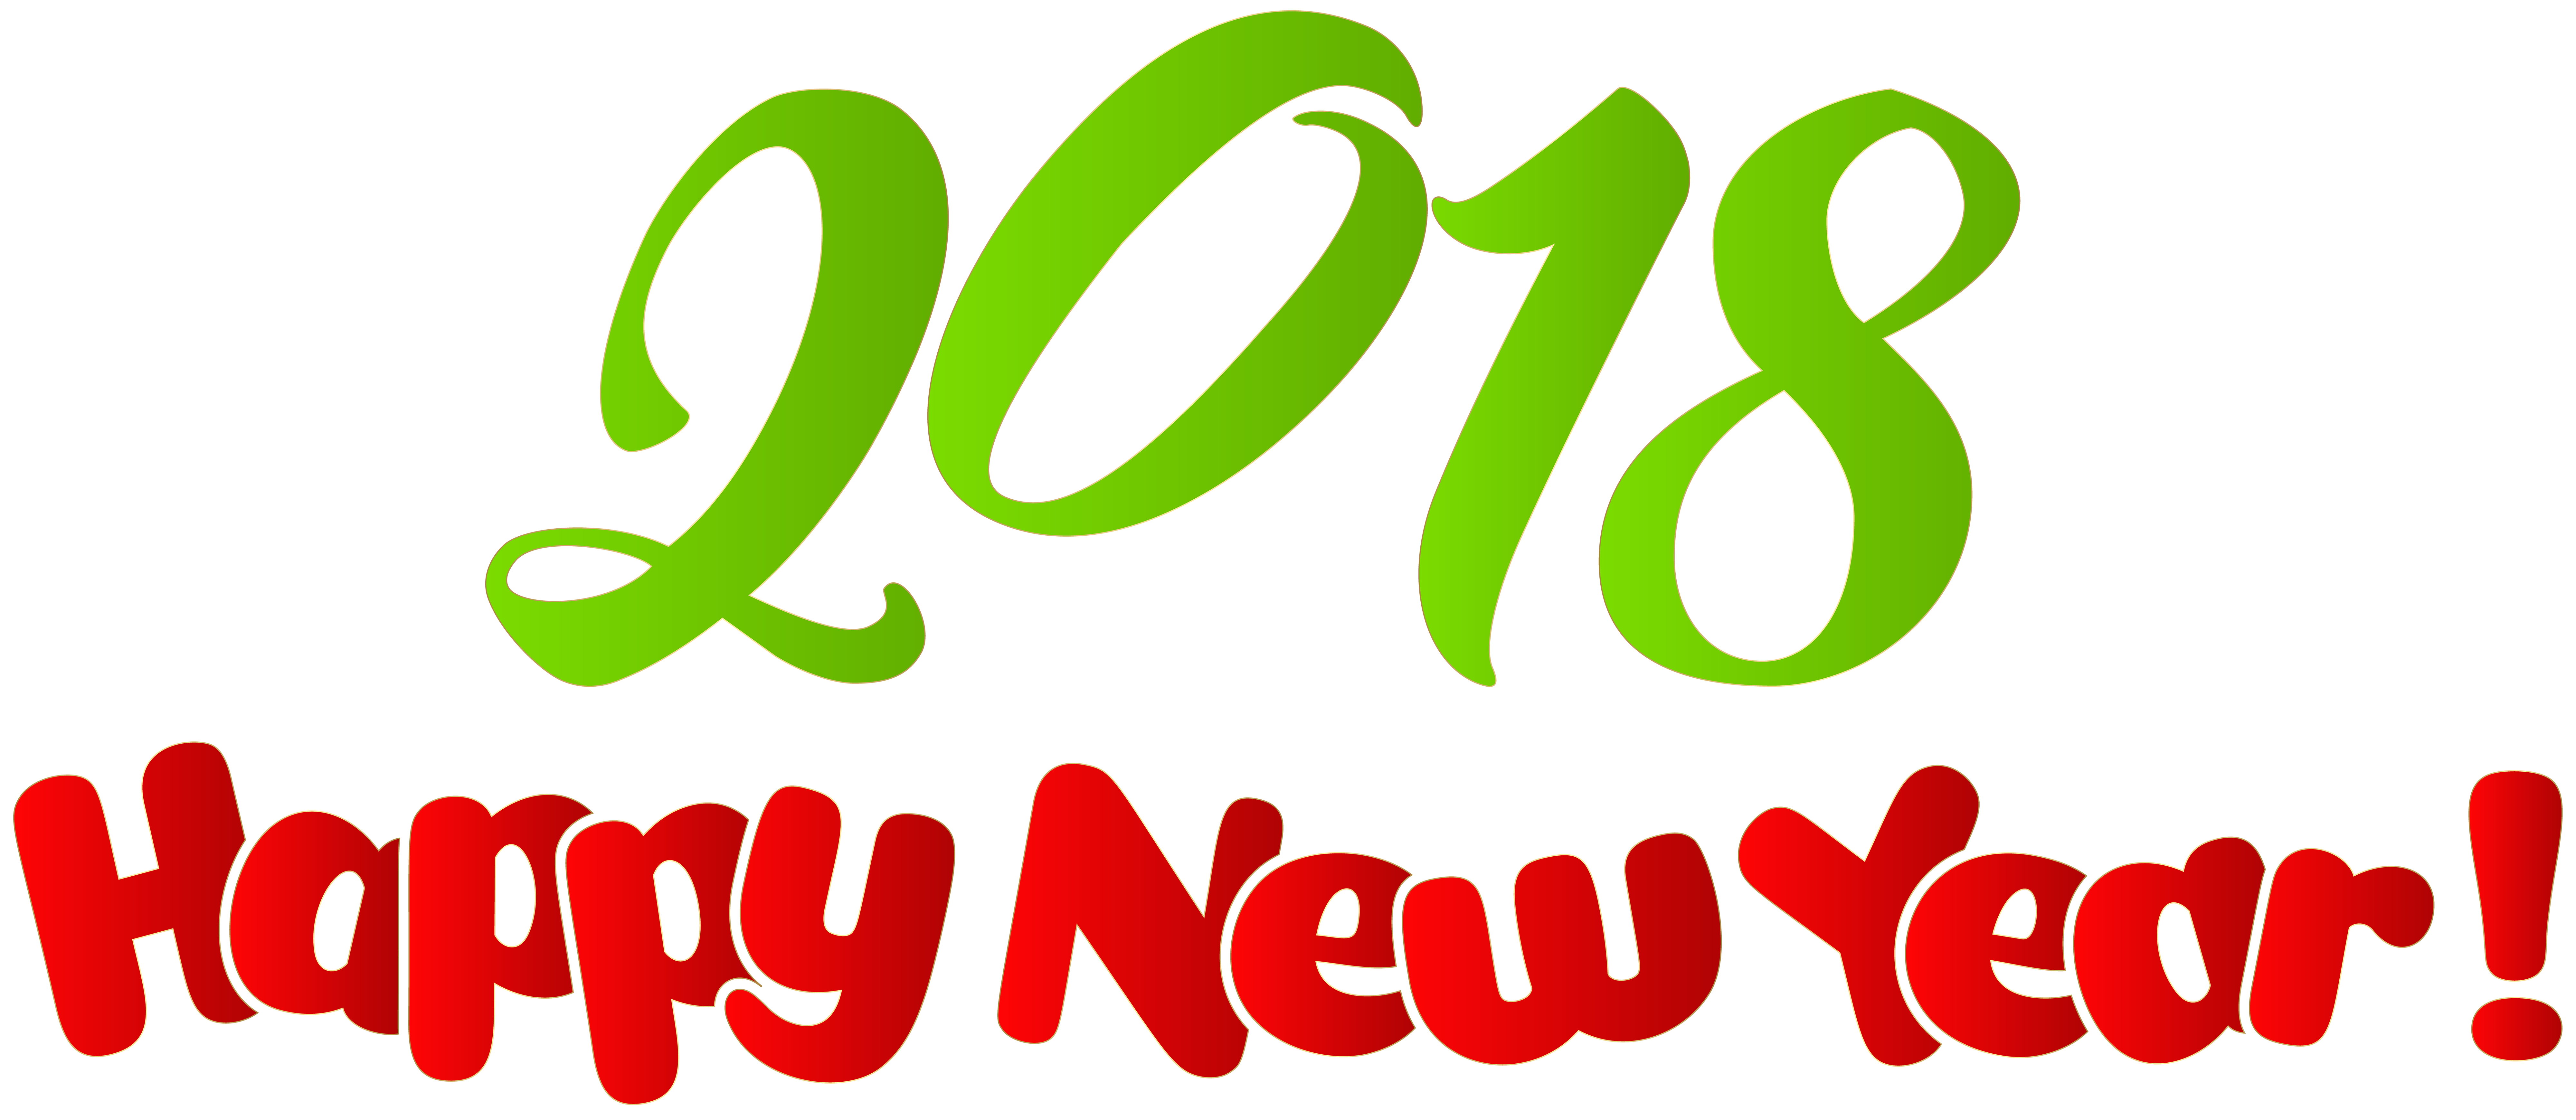 Free clipart images happy new year 2018 picture free stock 2018 Happy New Year PNG Clip Art Image | Gallery Yopriceville ... picture free stock